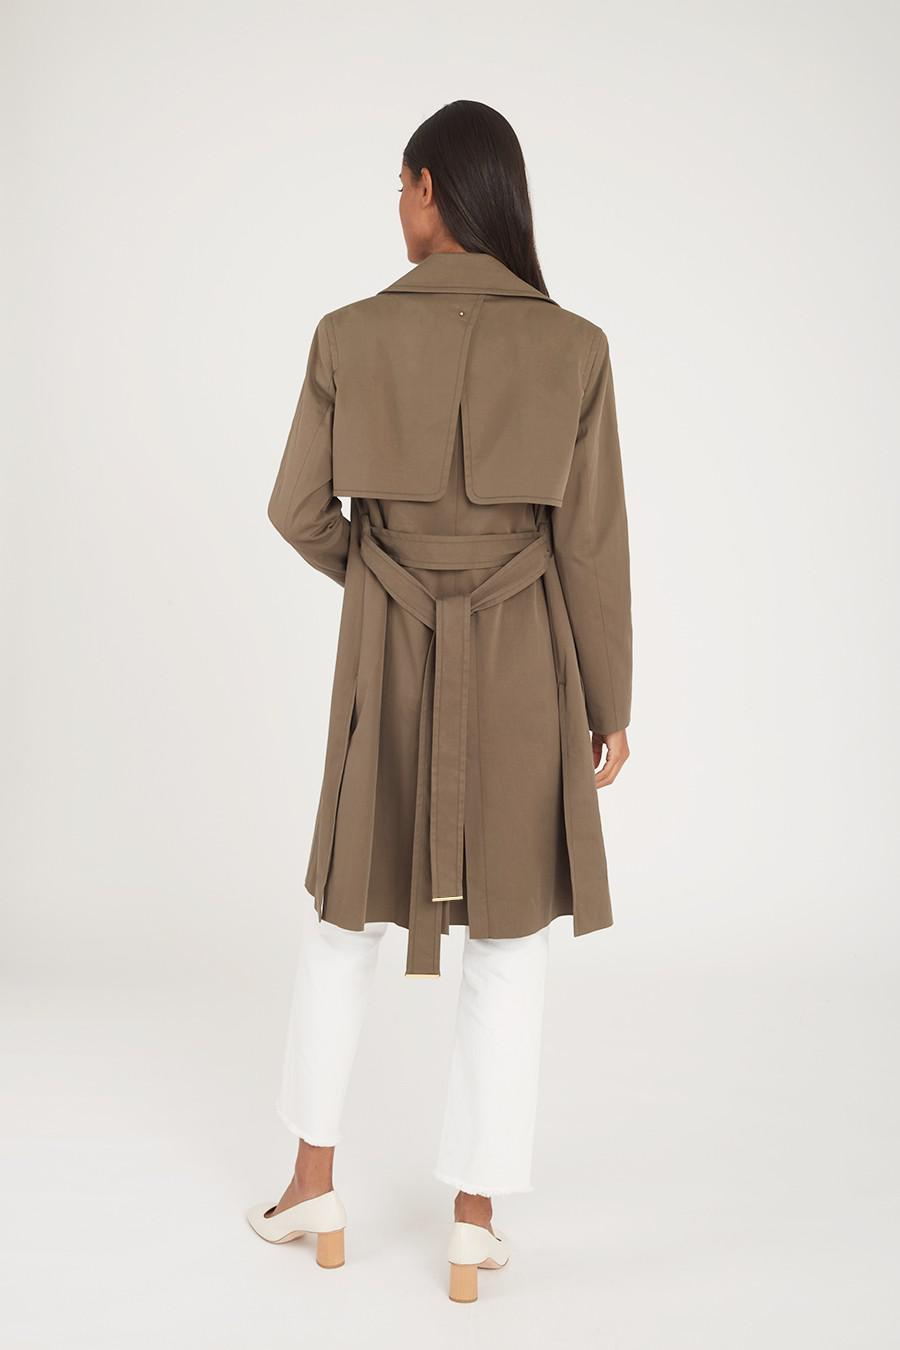 Women's Classic Trench in Olive | Size: 2